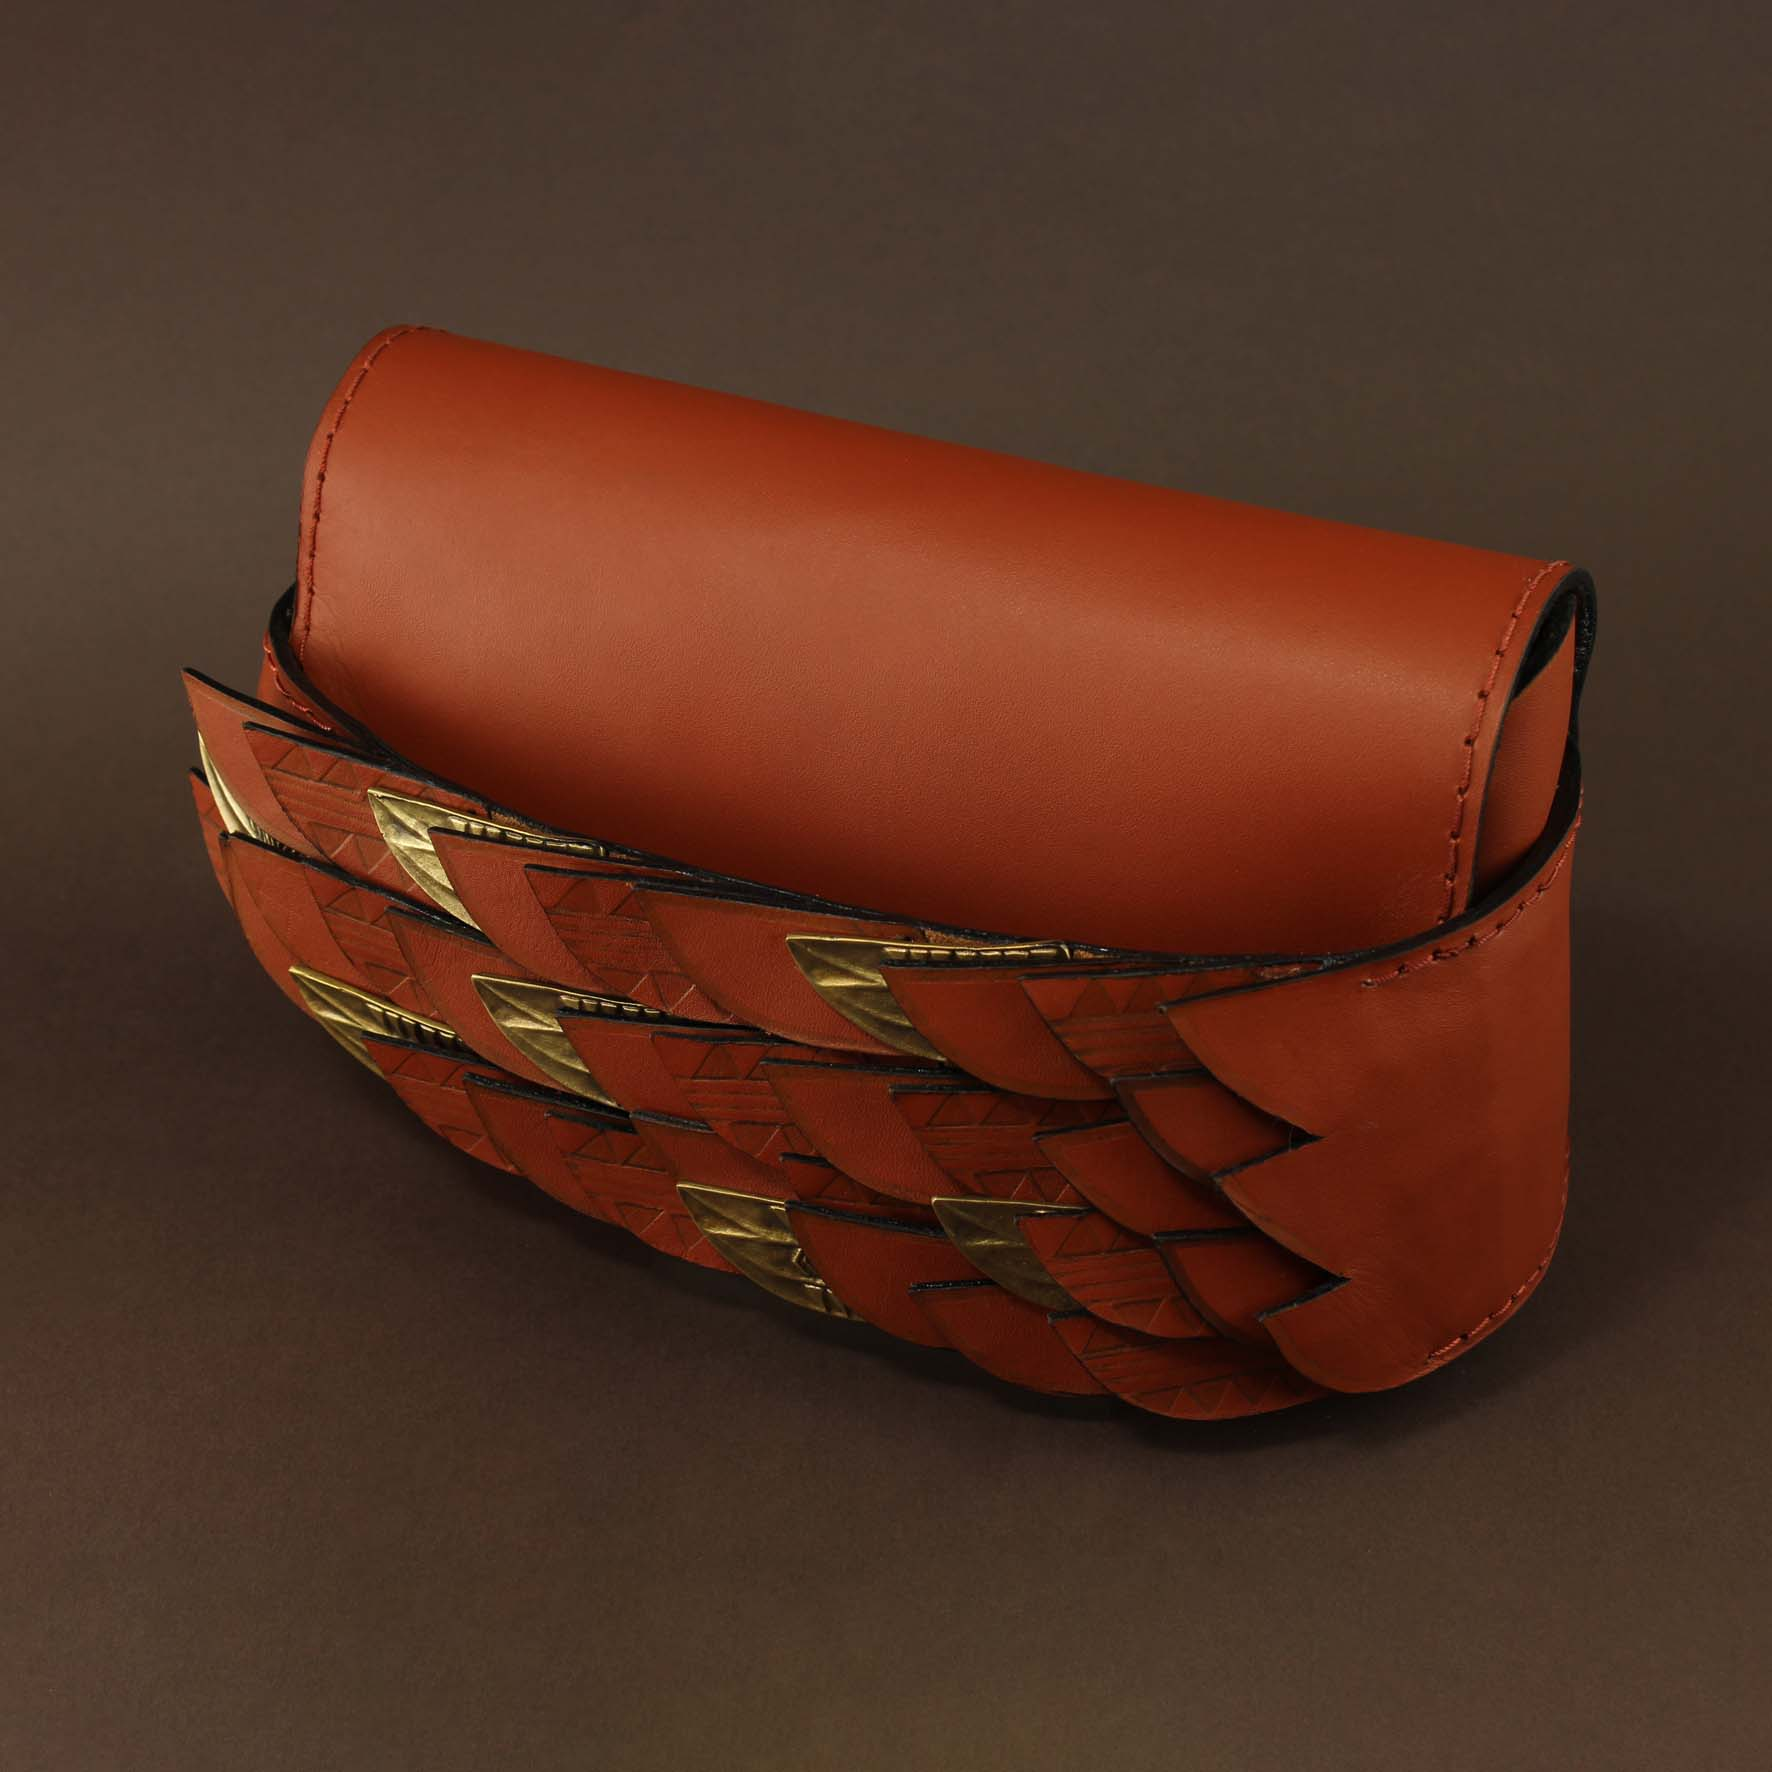 Horus Wings Purse